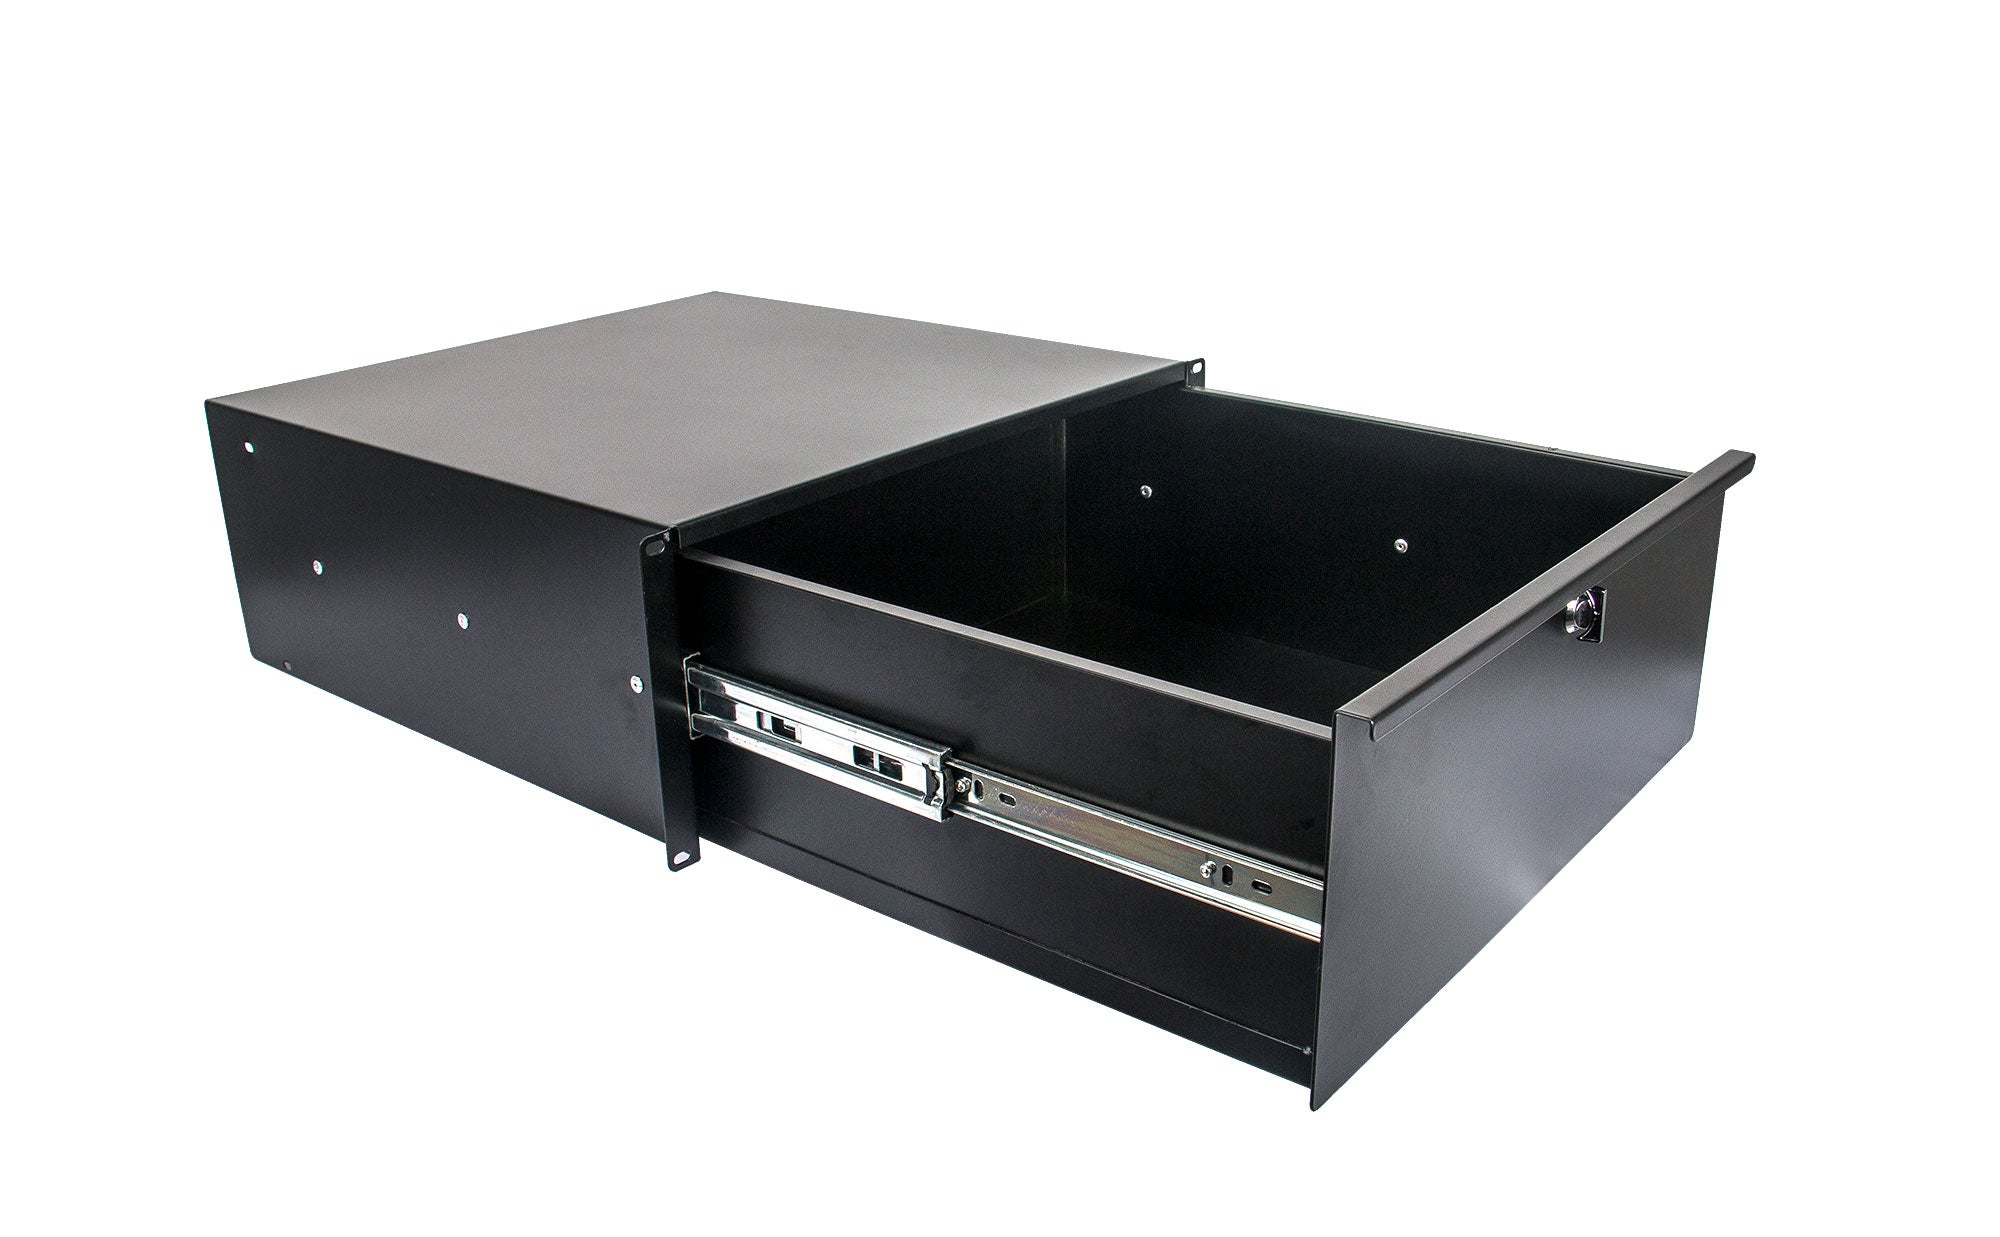 OSP HYC-4UD 4 Space Rack Drawer